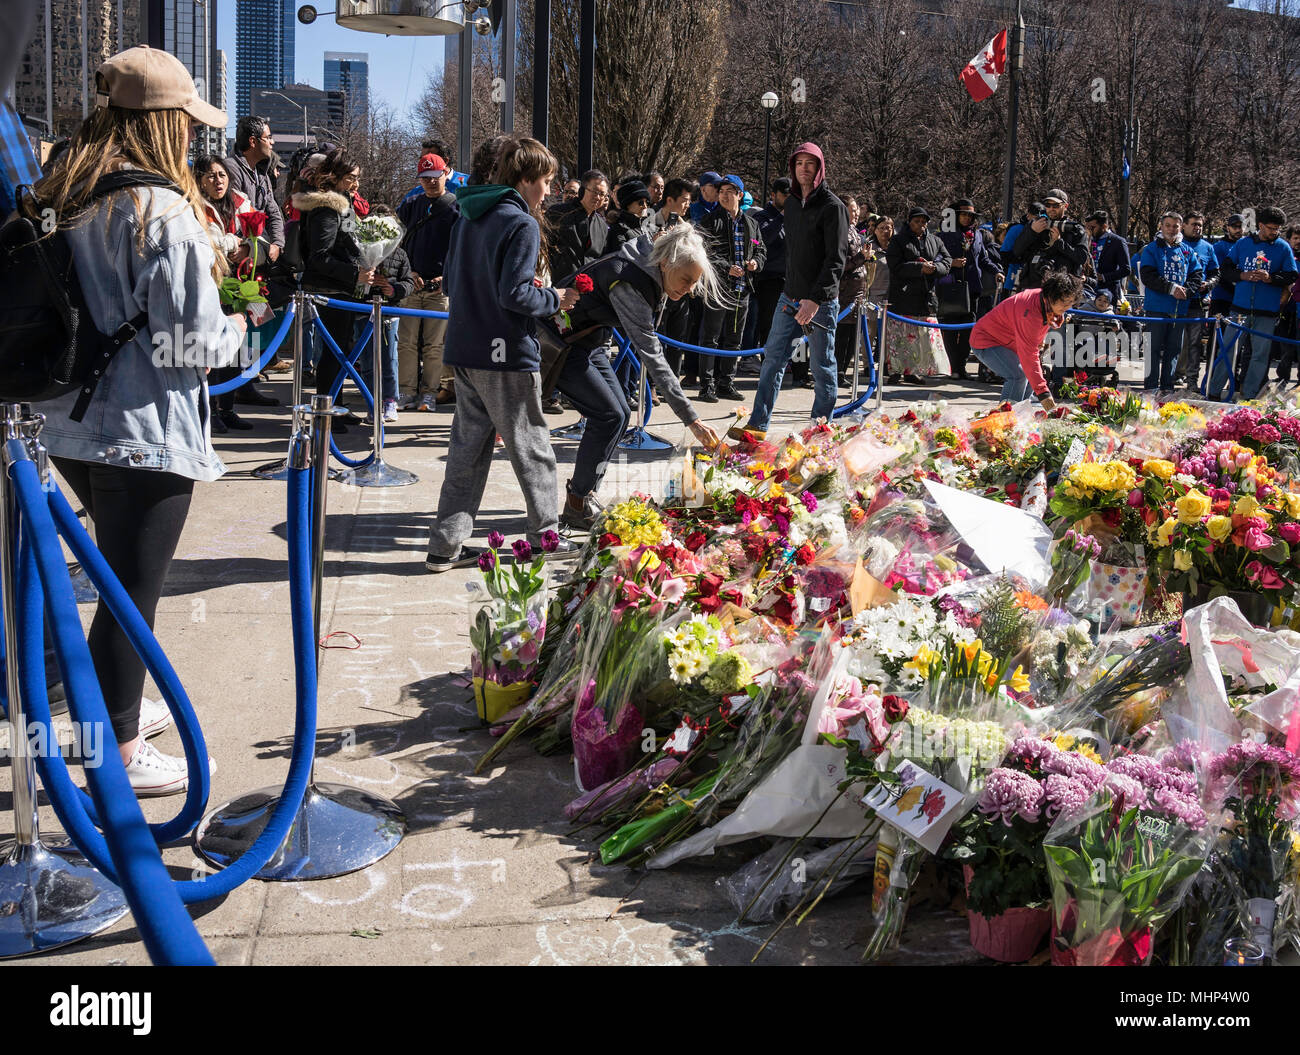 Van attack, a city in mourning,Toronto Strong tragedy and carnage on Yonge Street 10 people killed by a van driving on sidewalk, Toronto,Canada - Stock Image